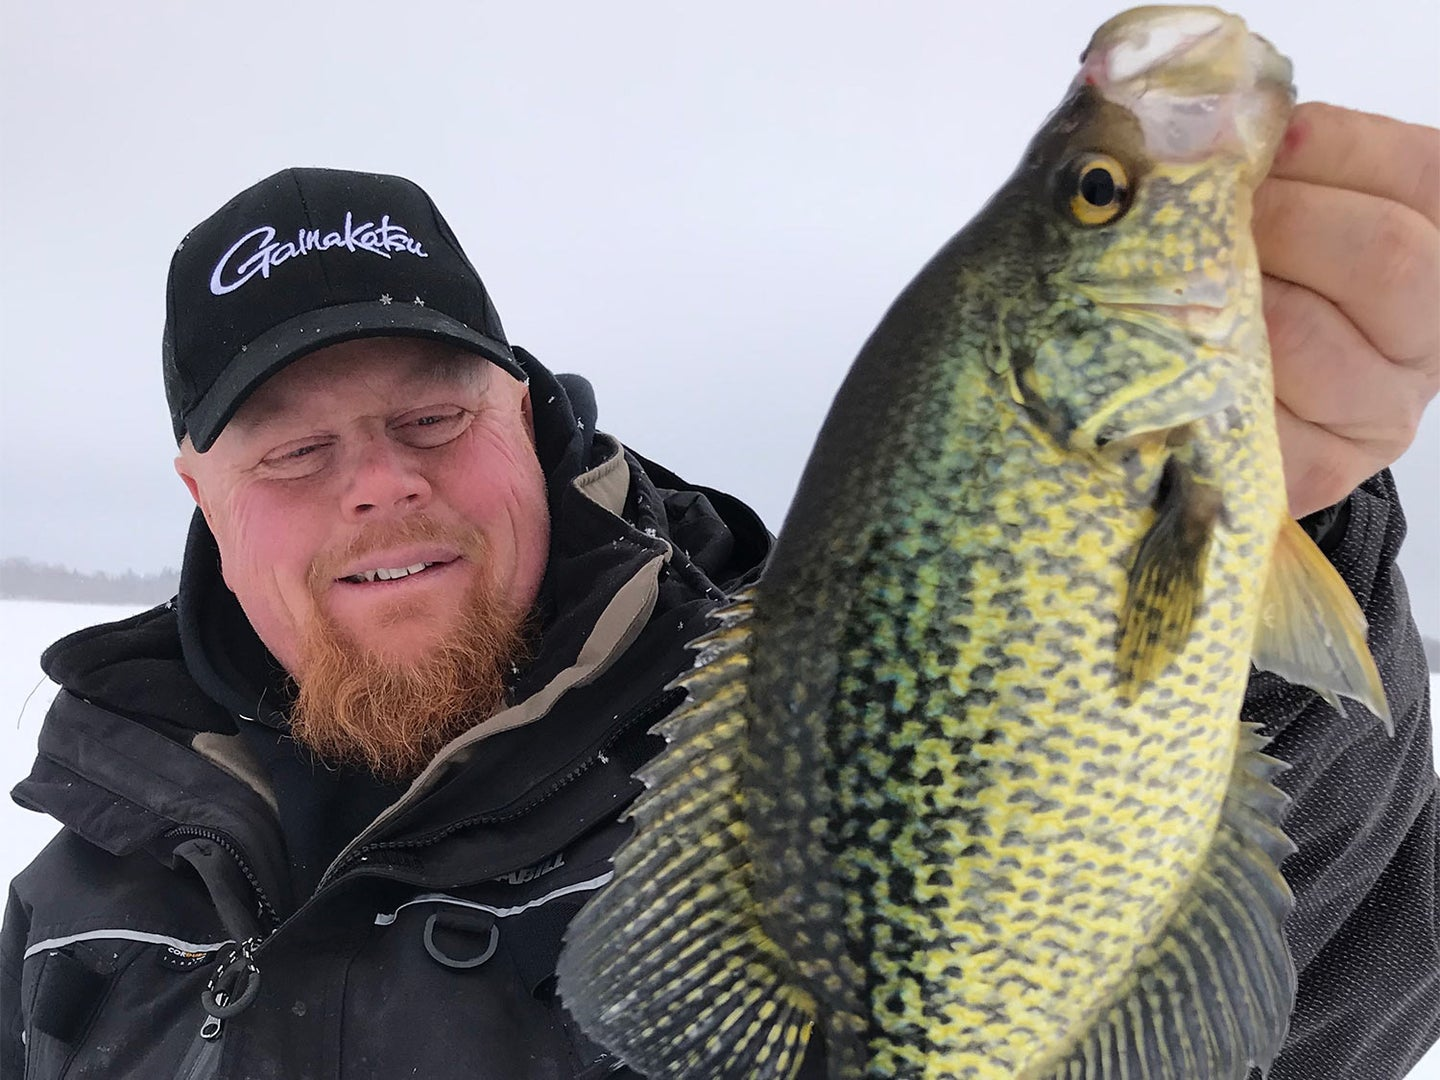 A man in cold-weather gear holds up a fish caught from the ice.